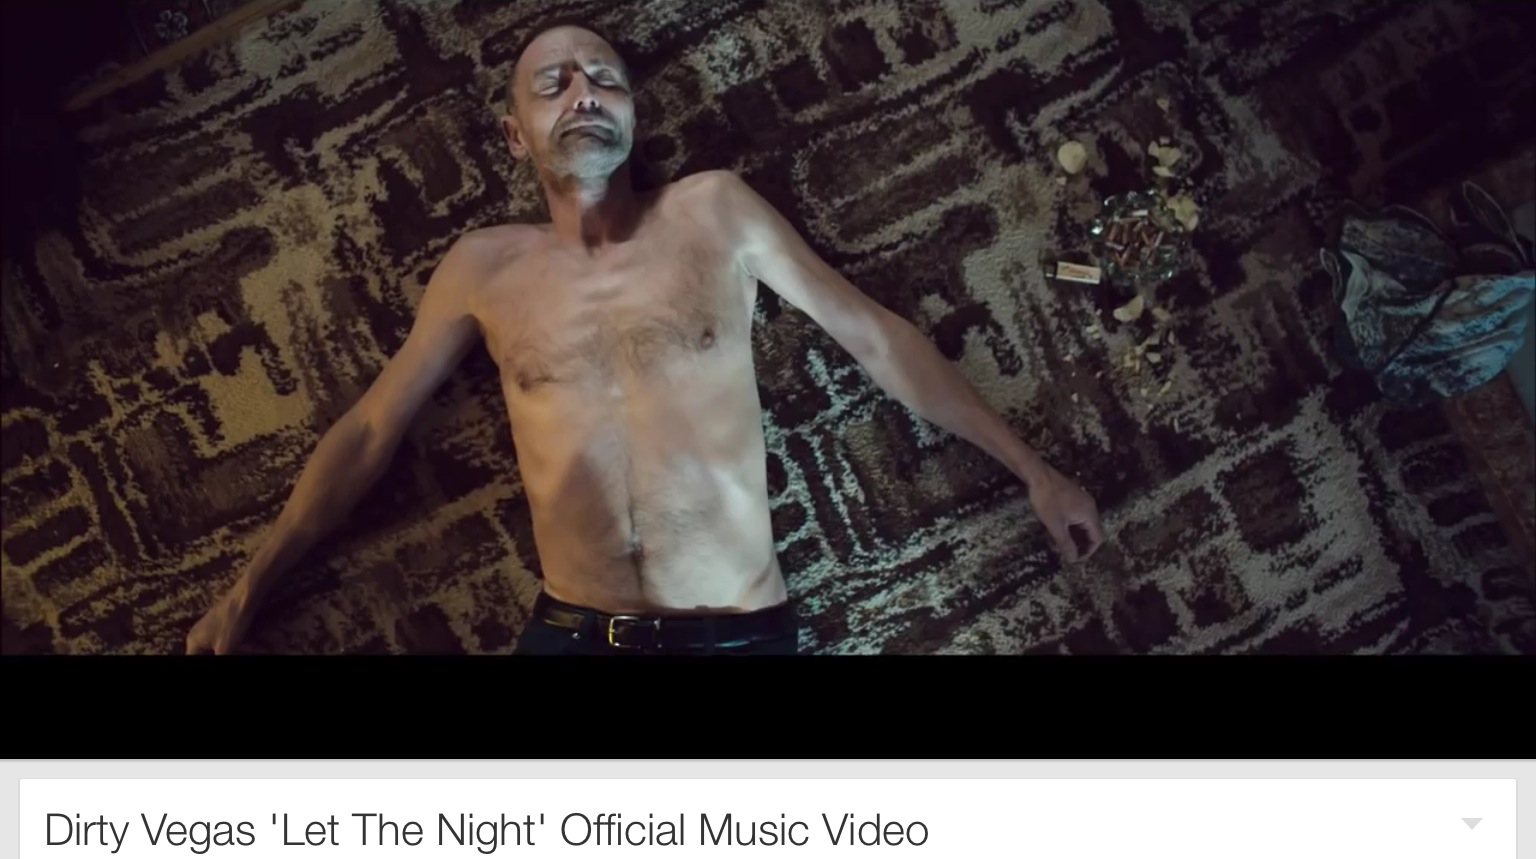 Dirty Vegas 'Let The Night' Official Video